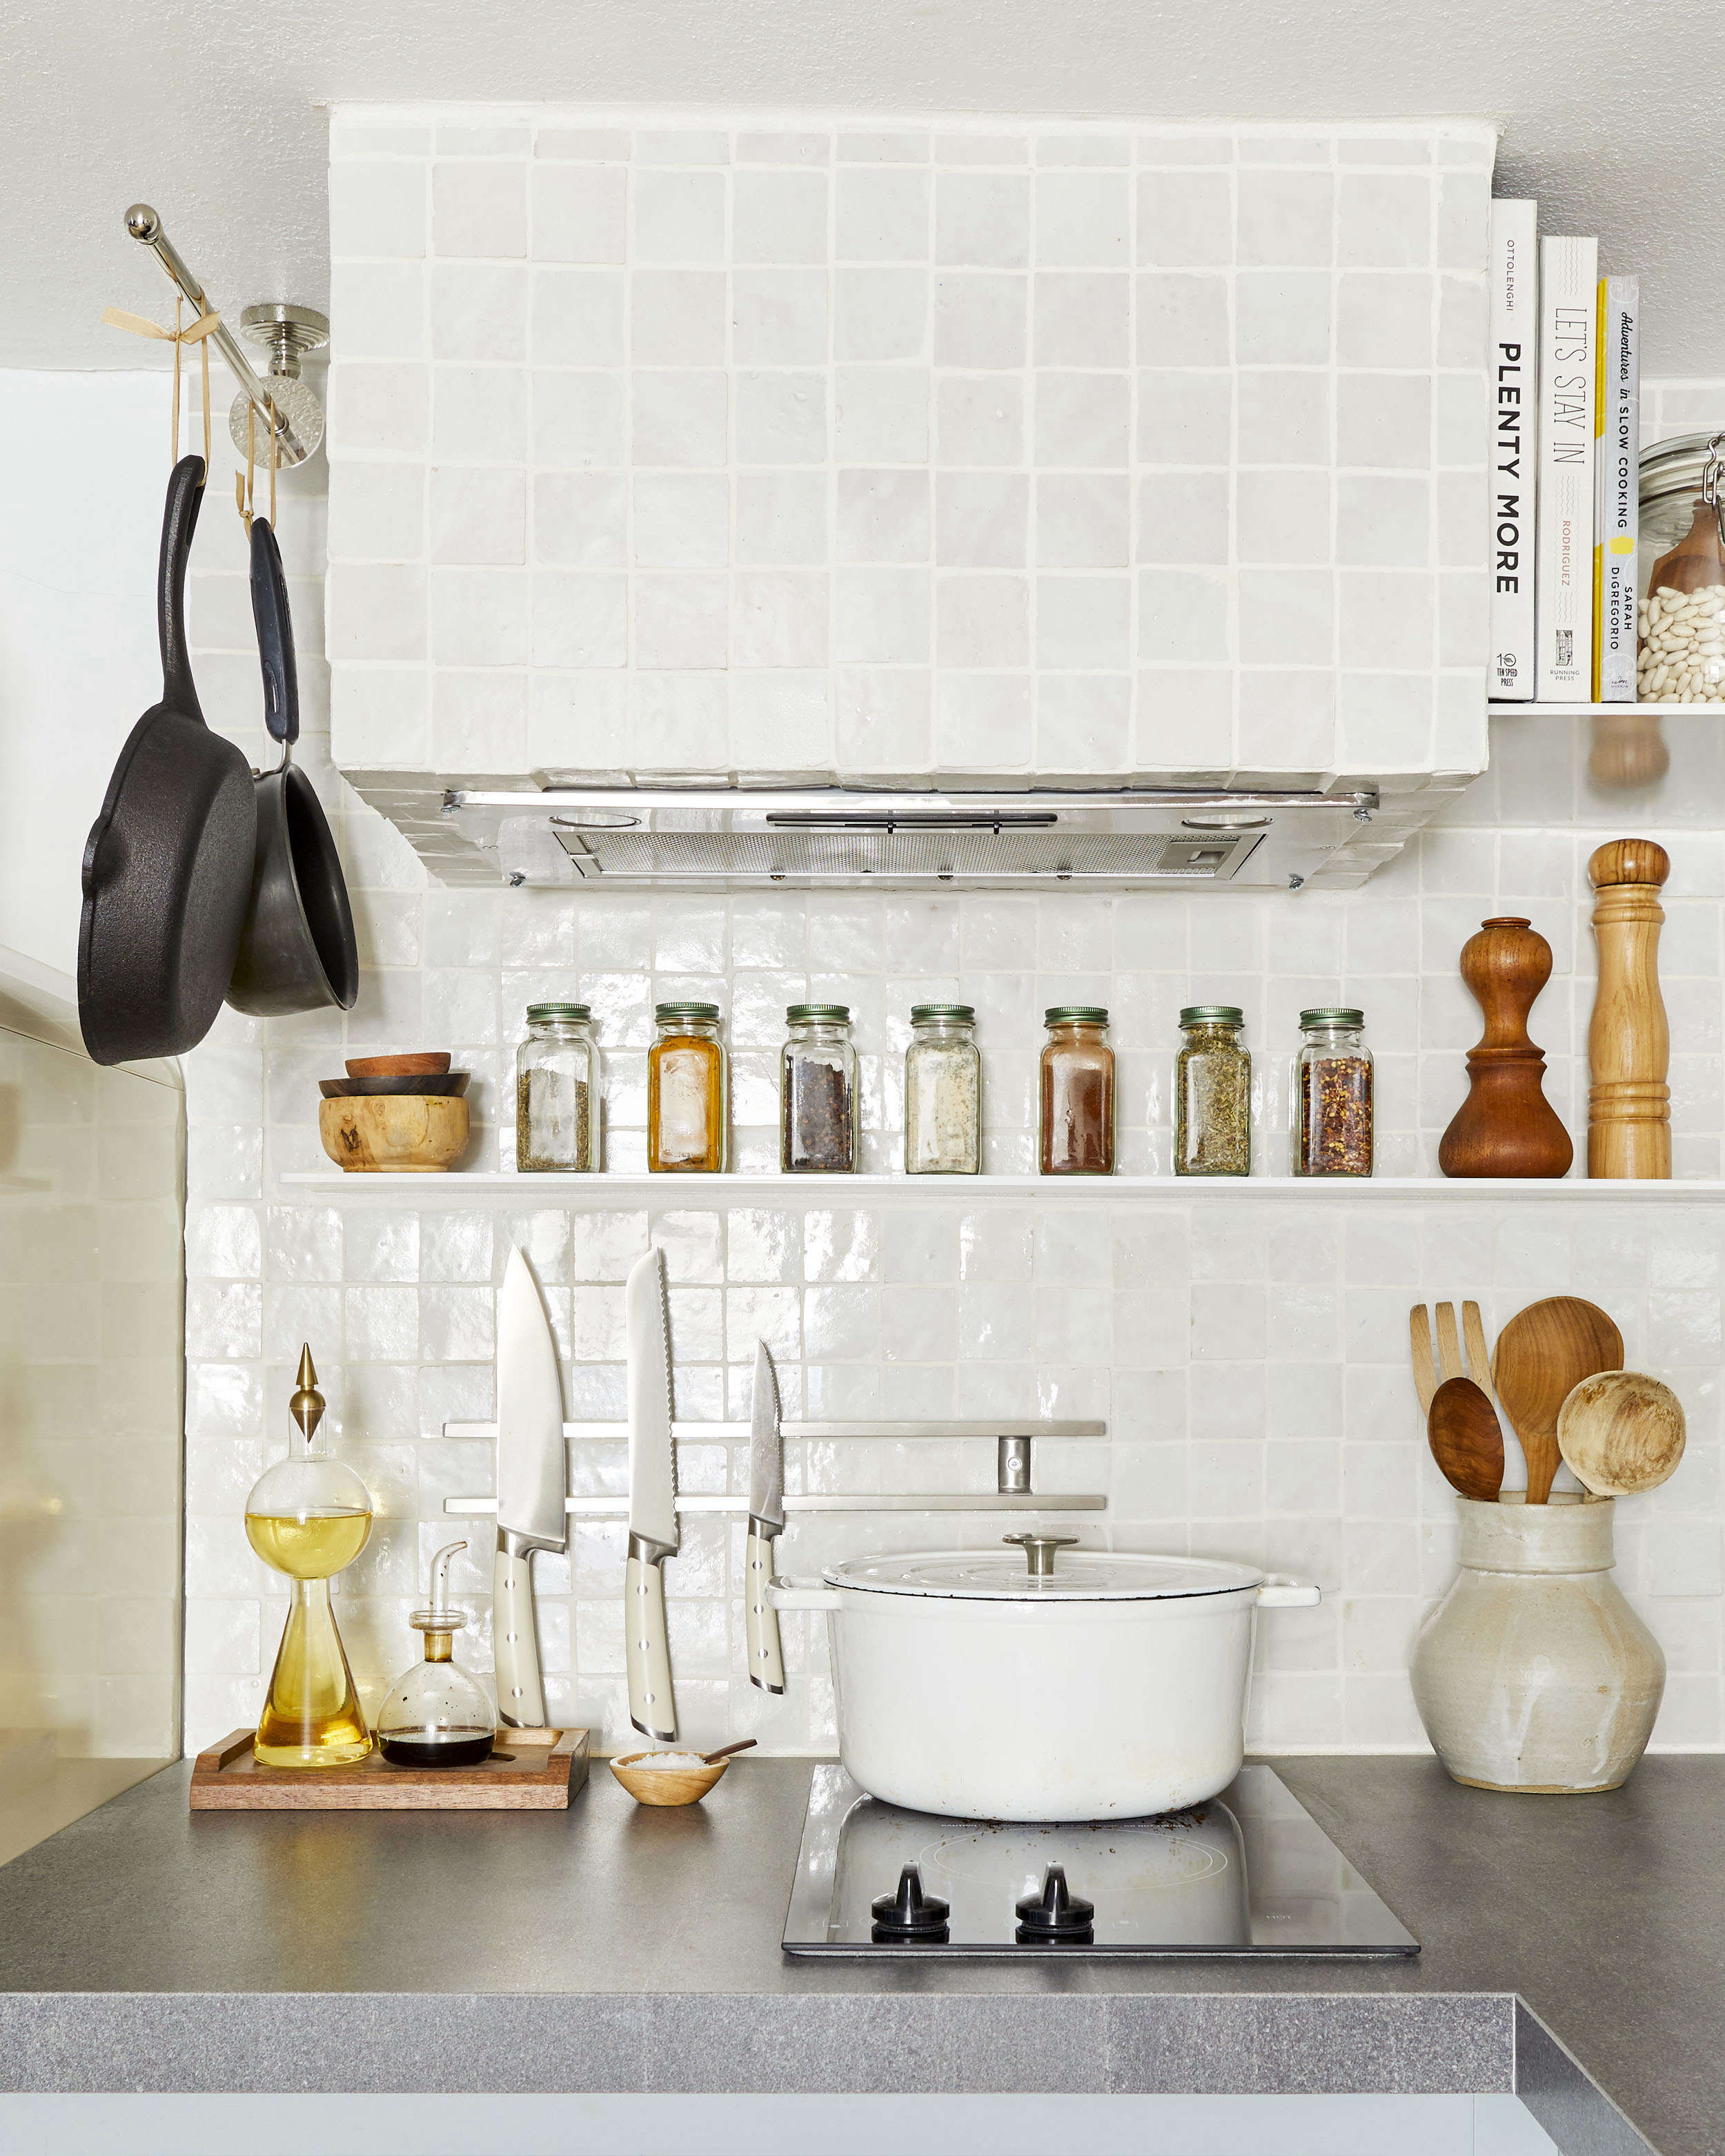 Supersized Storage In A Tiny Kitchen 7 Game Changing Aha Hacks